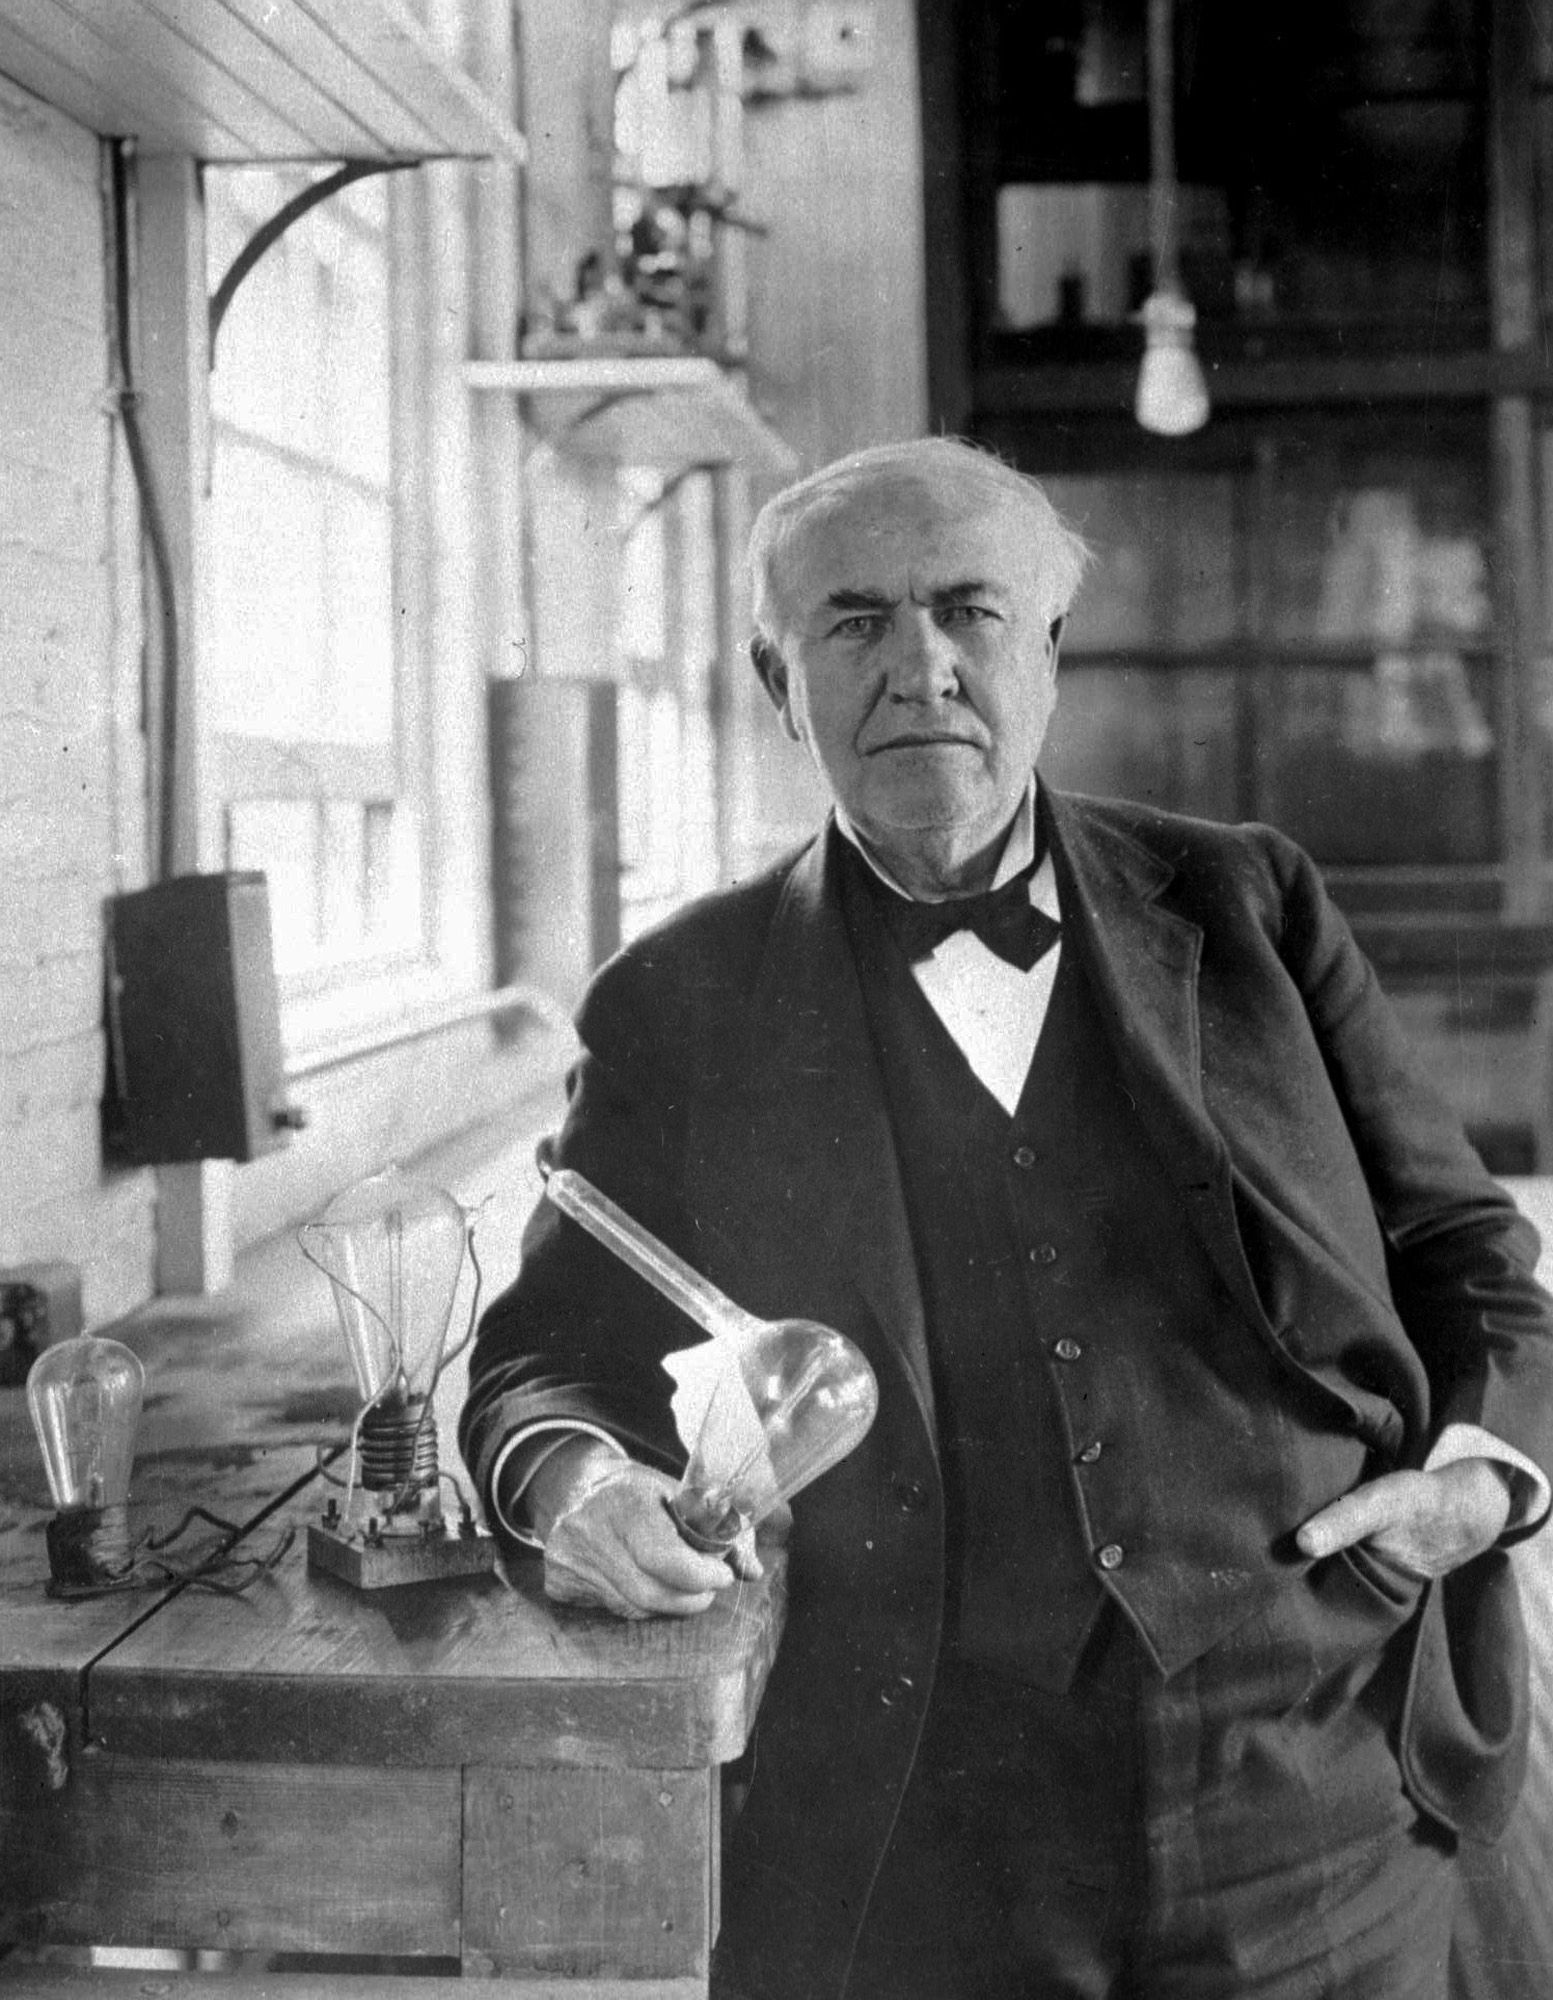 THOMAS EDISON AND ELECTRIC LIGHT